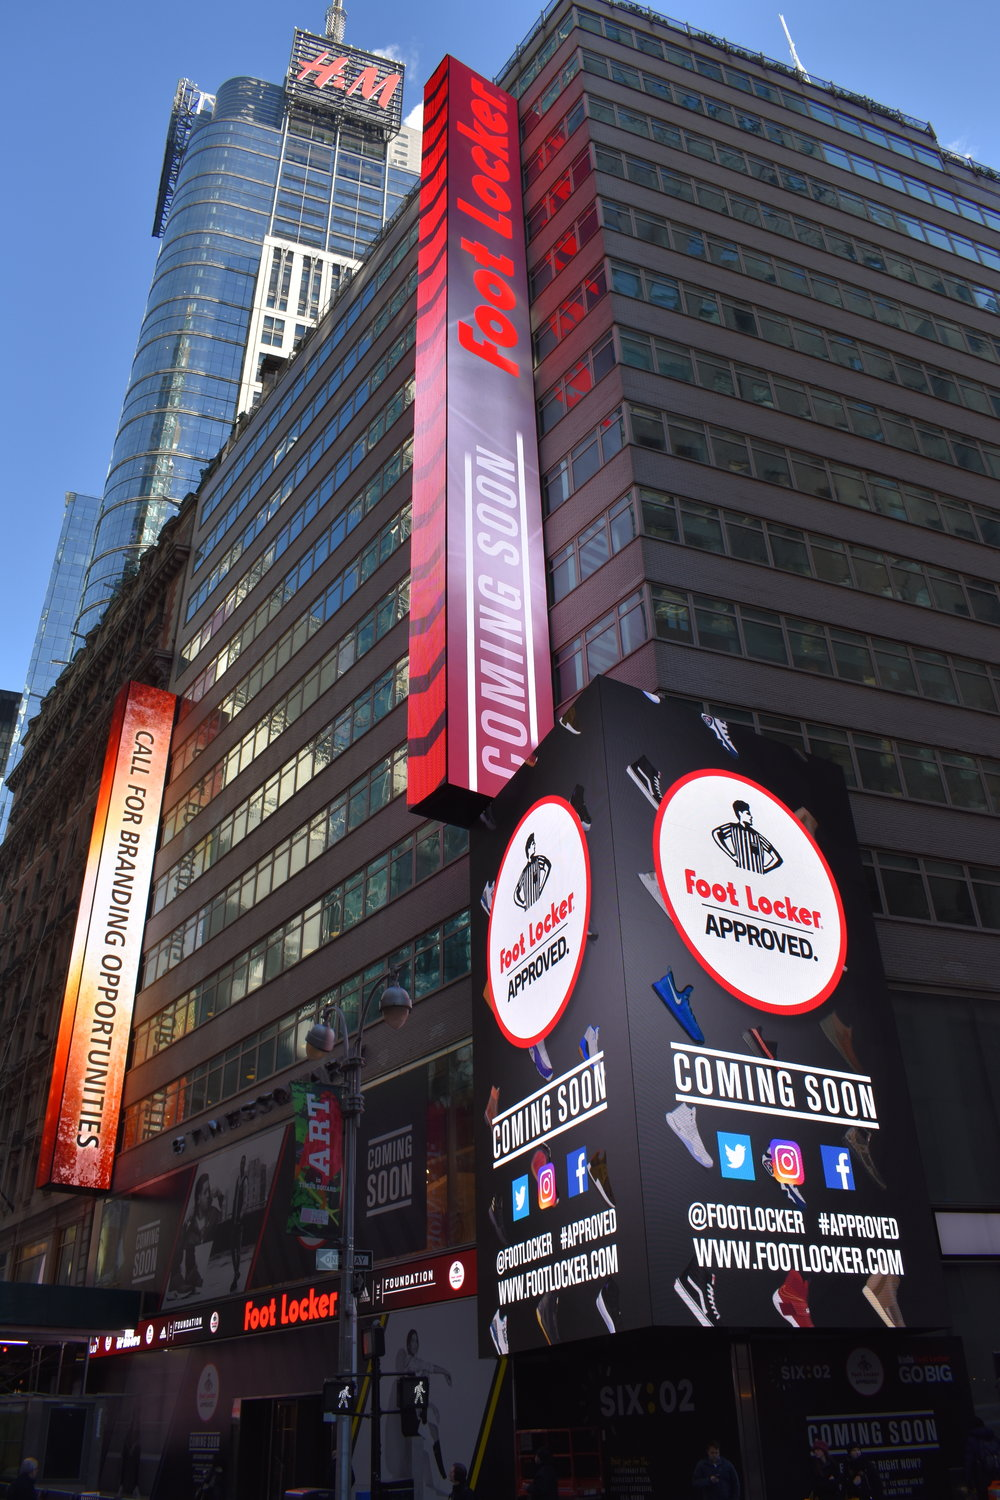 8 Times Square (1460 Broadway)